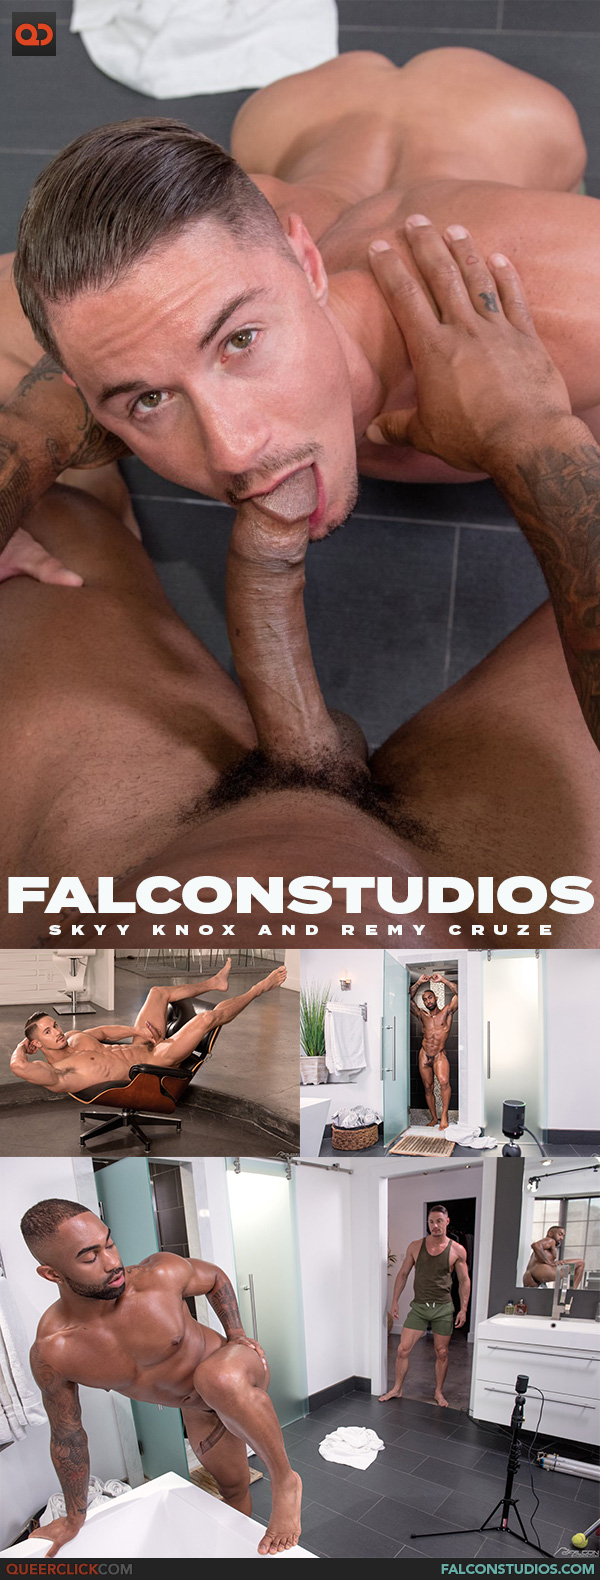 Falcon Studios: Skyy Knox and Remy Cruze